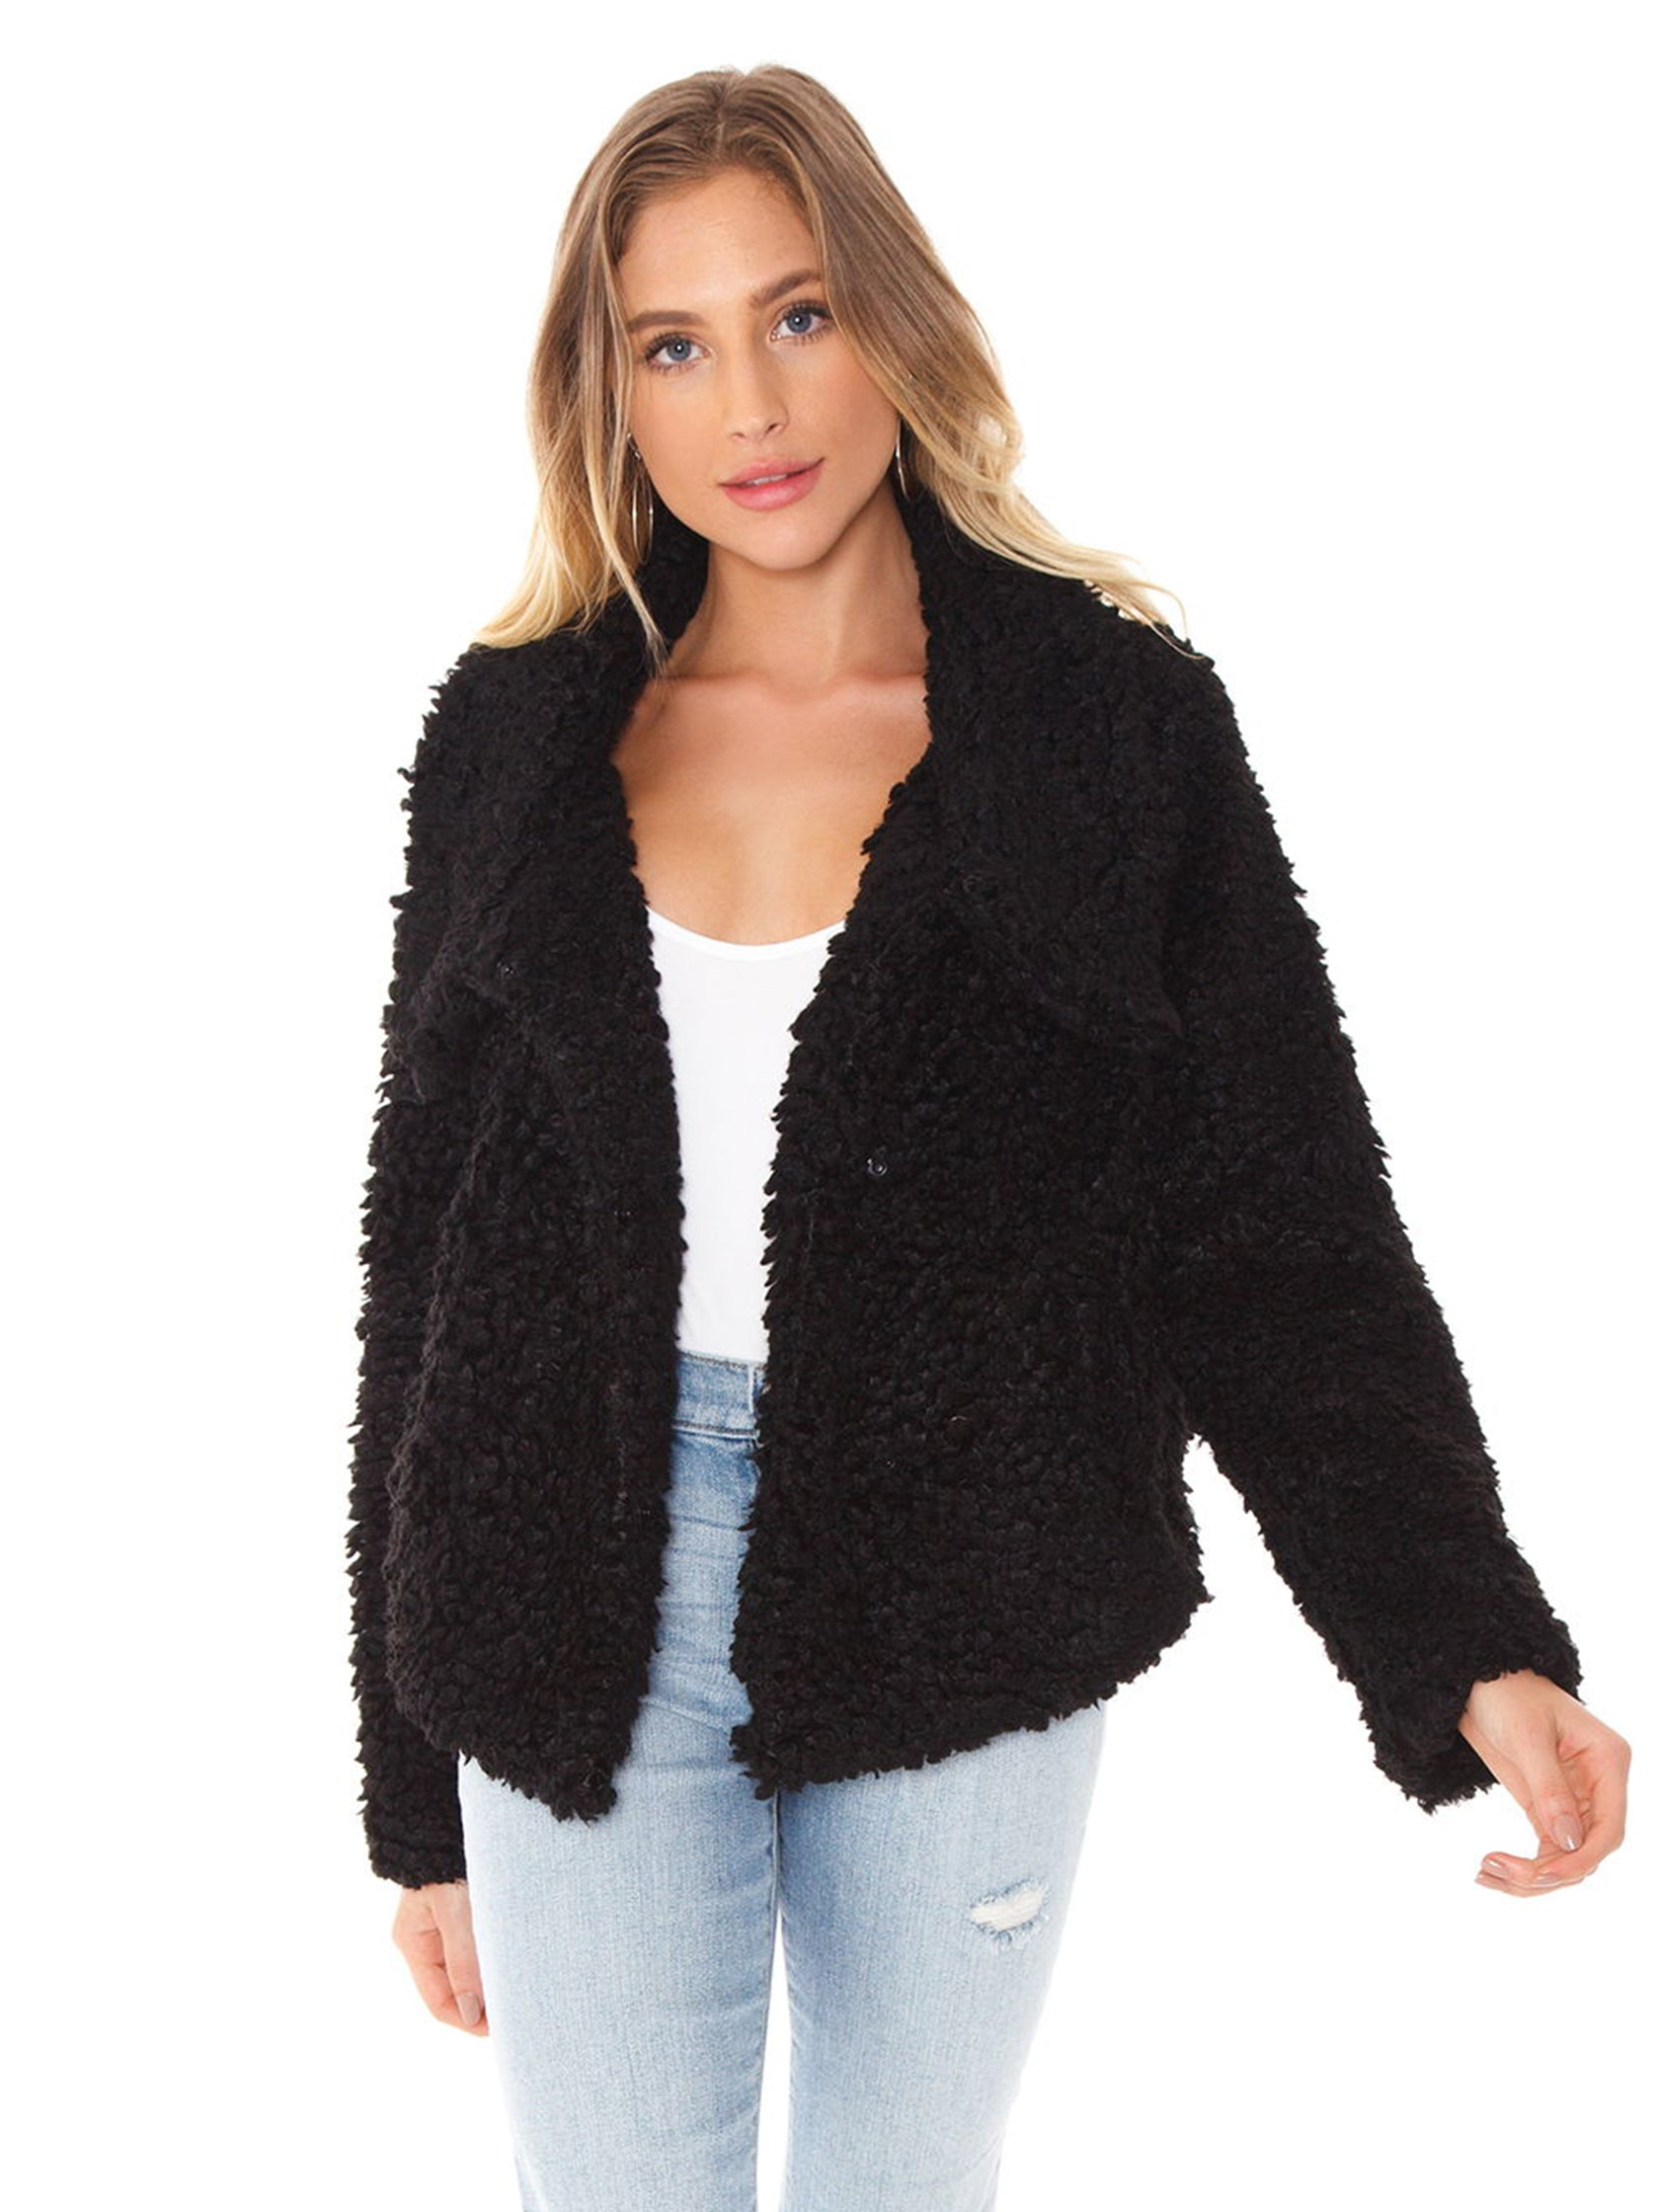 b9fa08e0bc7 Girl outfit in a jacket rental from Bishop + Young called Faux Fur Jacket